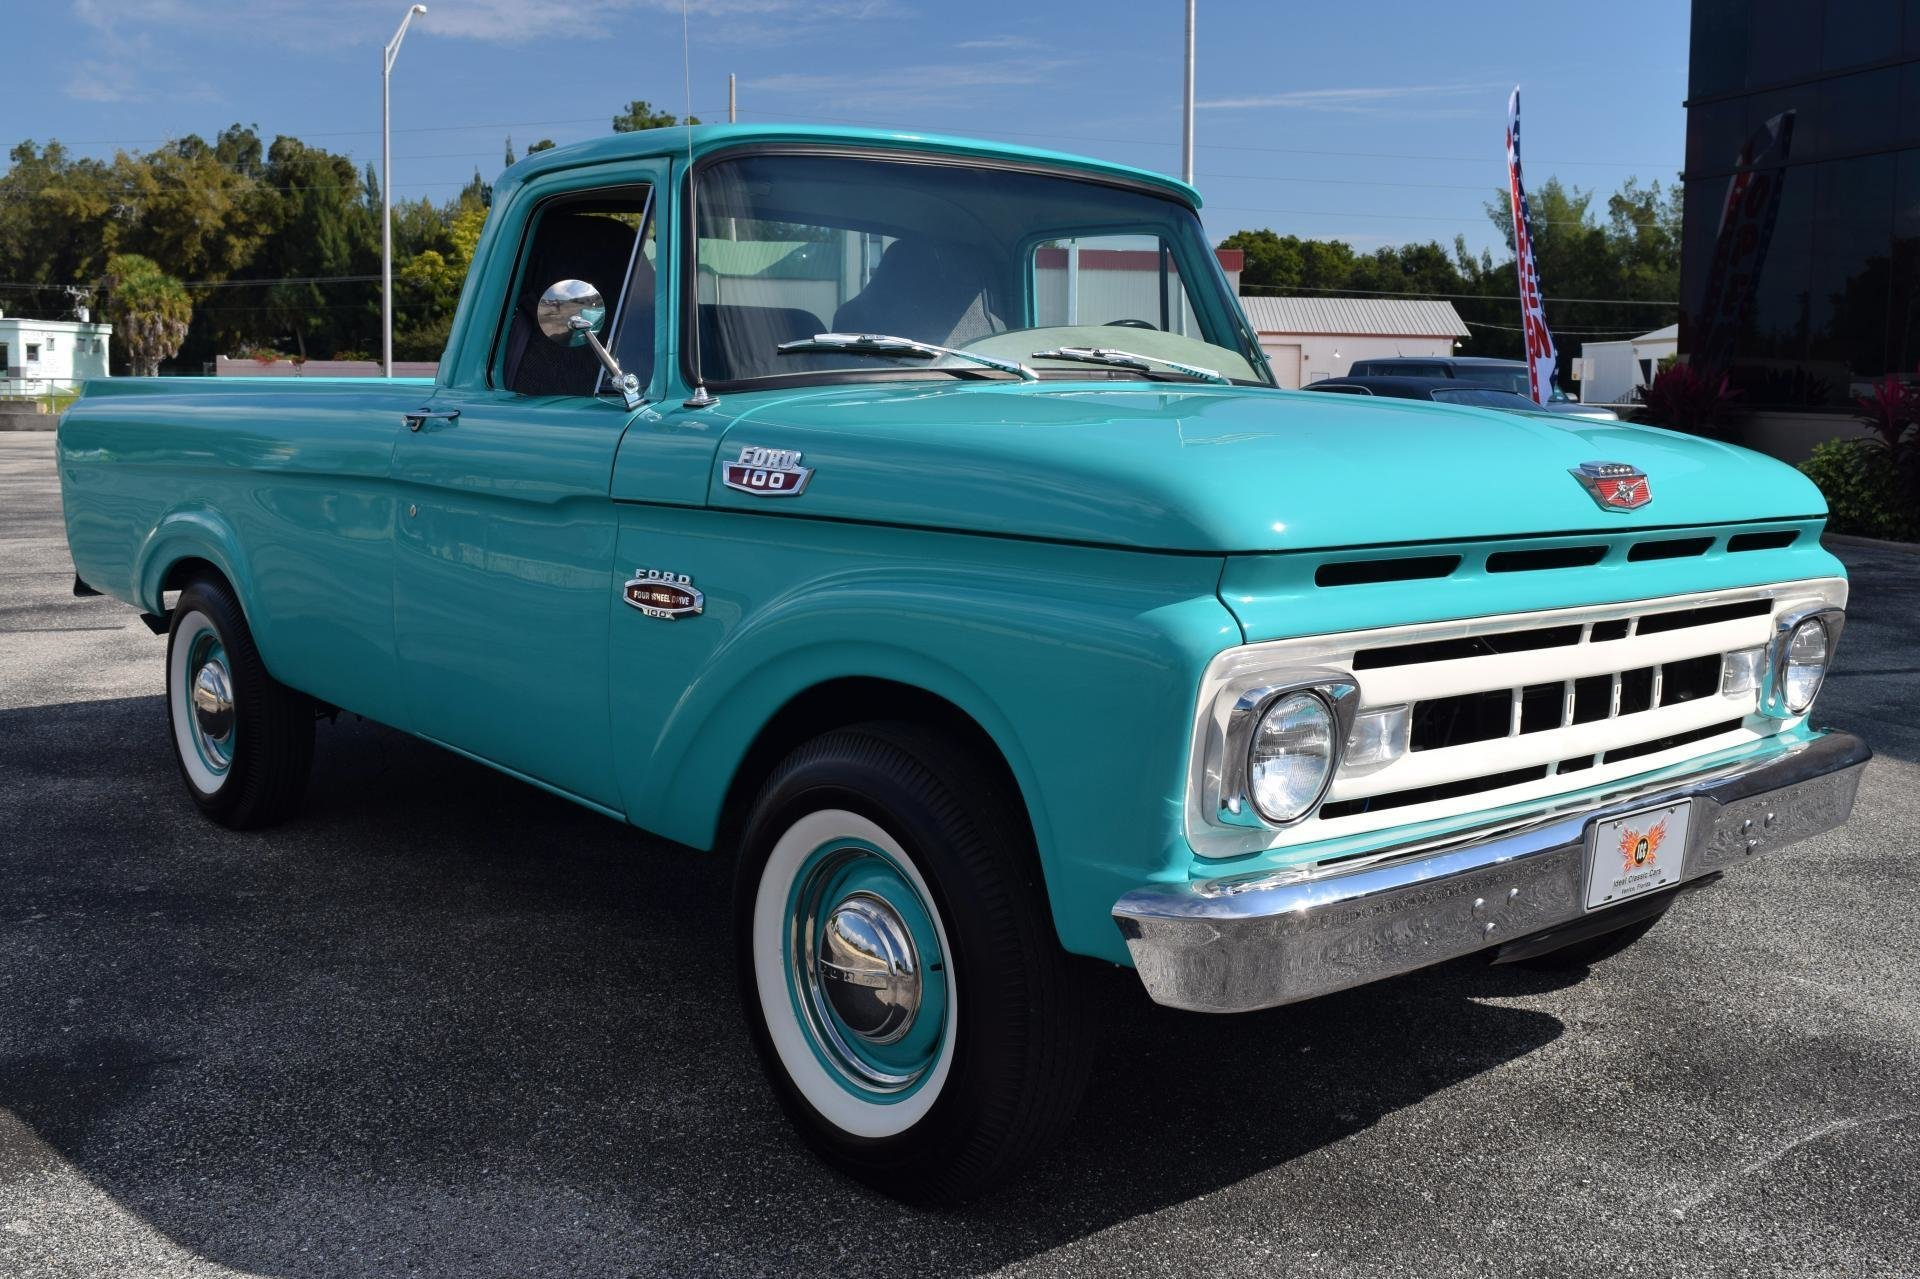 1961 Ford F100 Ideal Classic Cars Llc Pick Up 7512acd9e925 Low Res